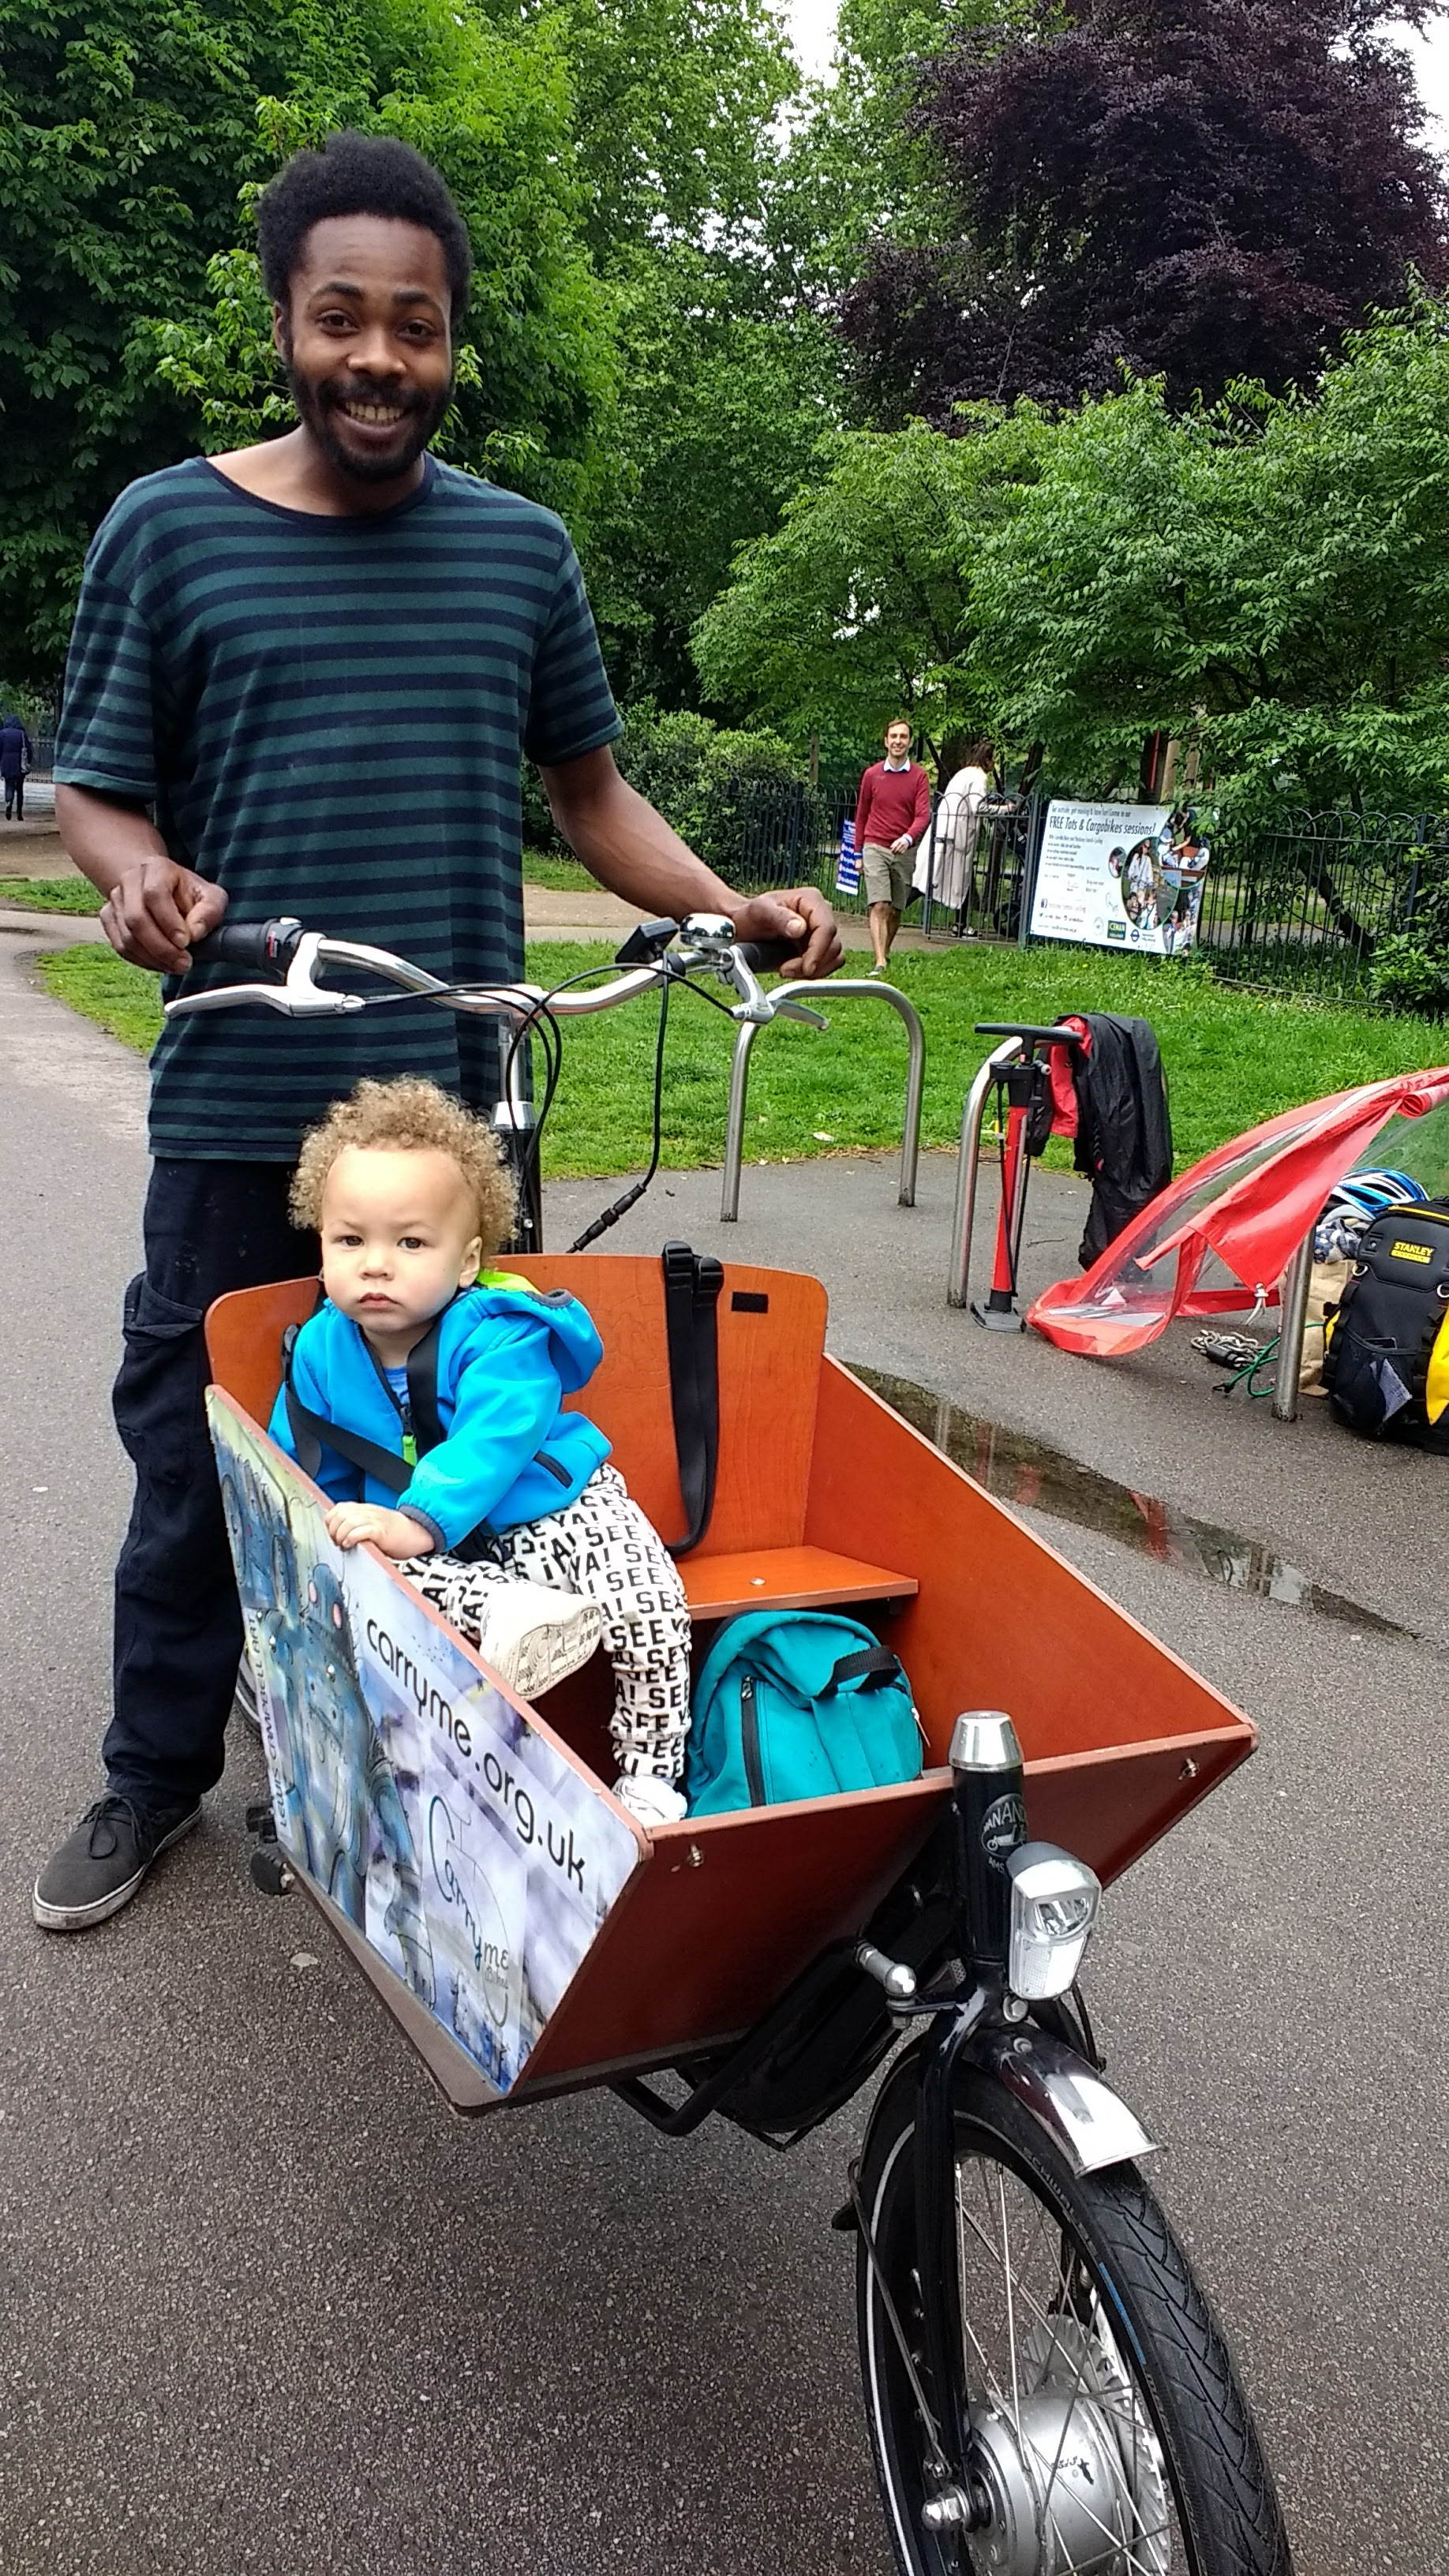 Dad with little tot in cargobike